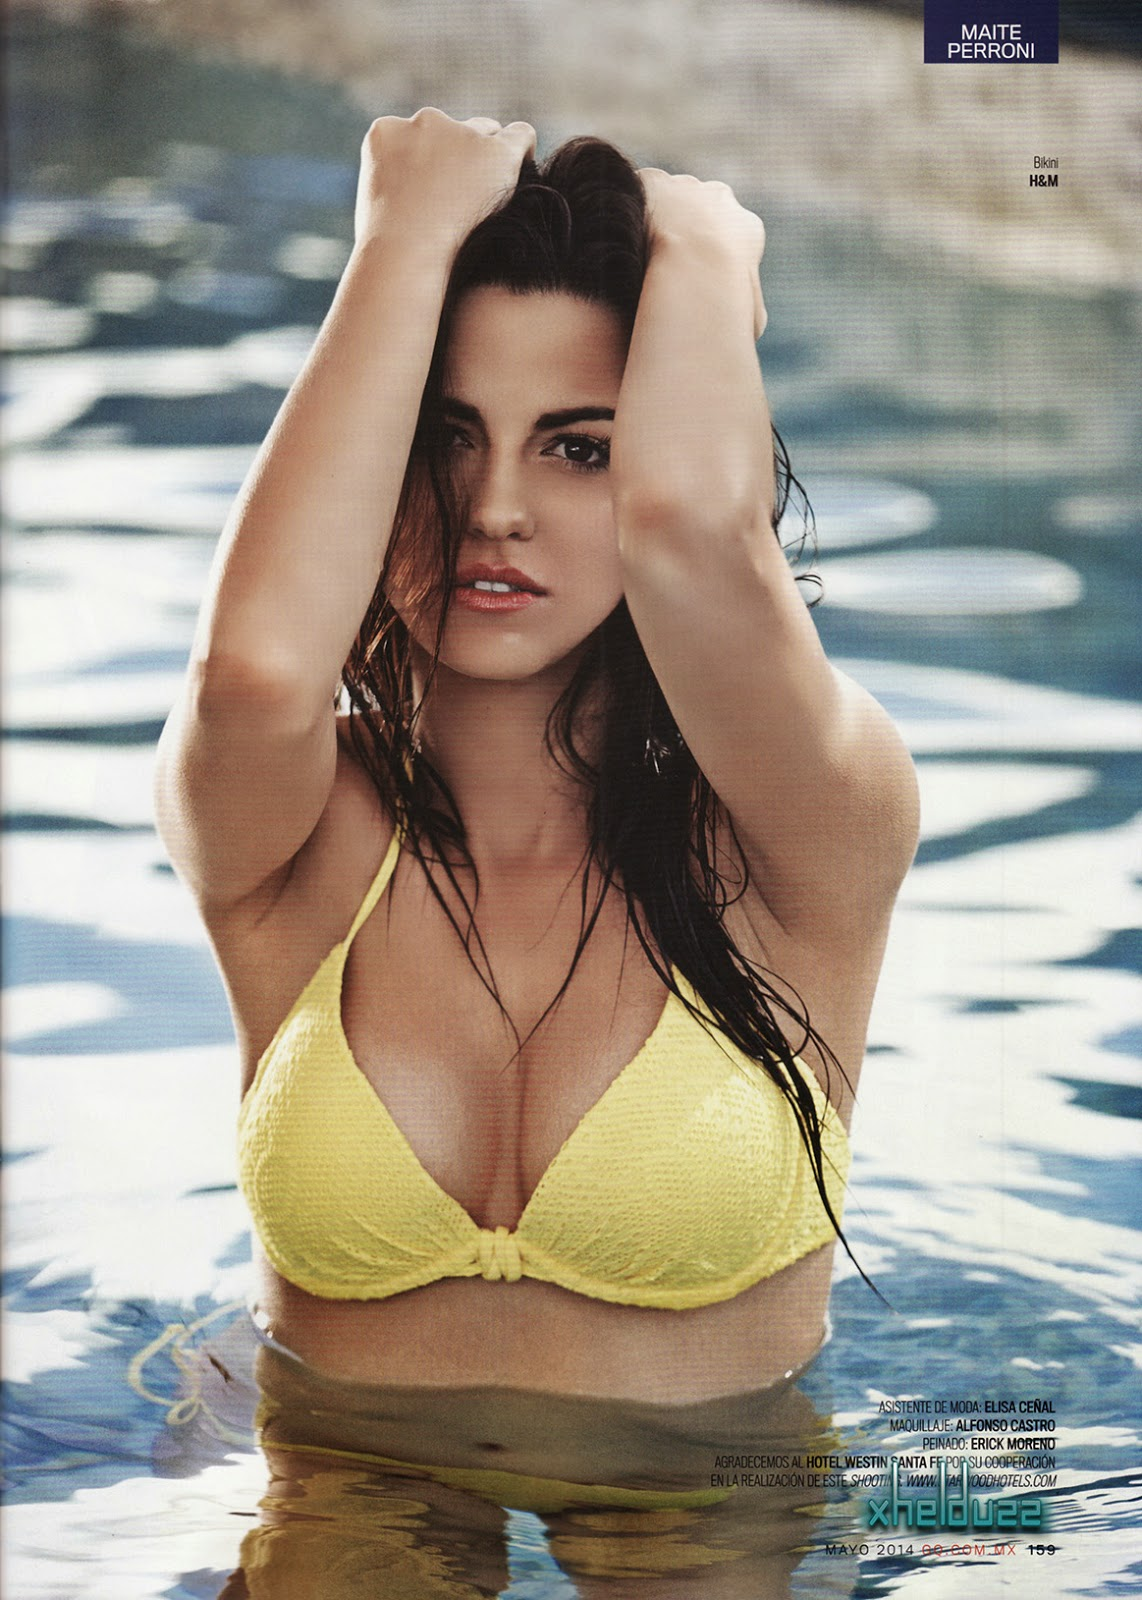 Maite Perroni For GQ Magazine, Mexico, May 2014